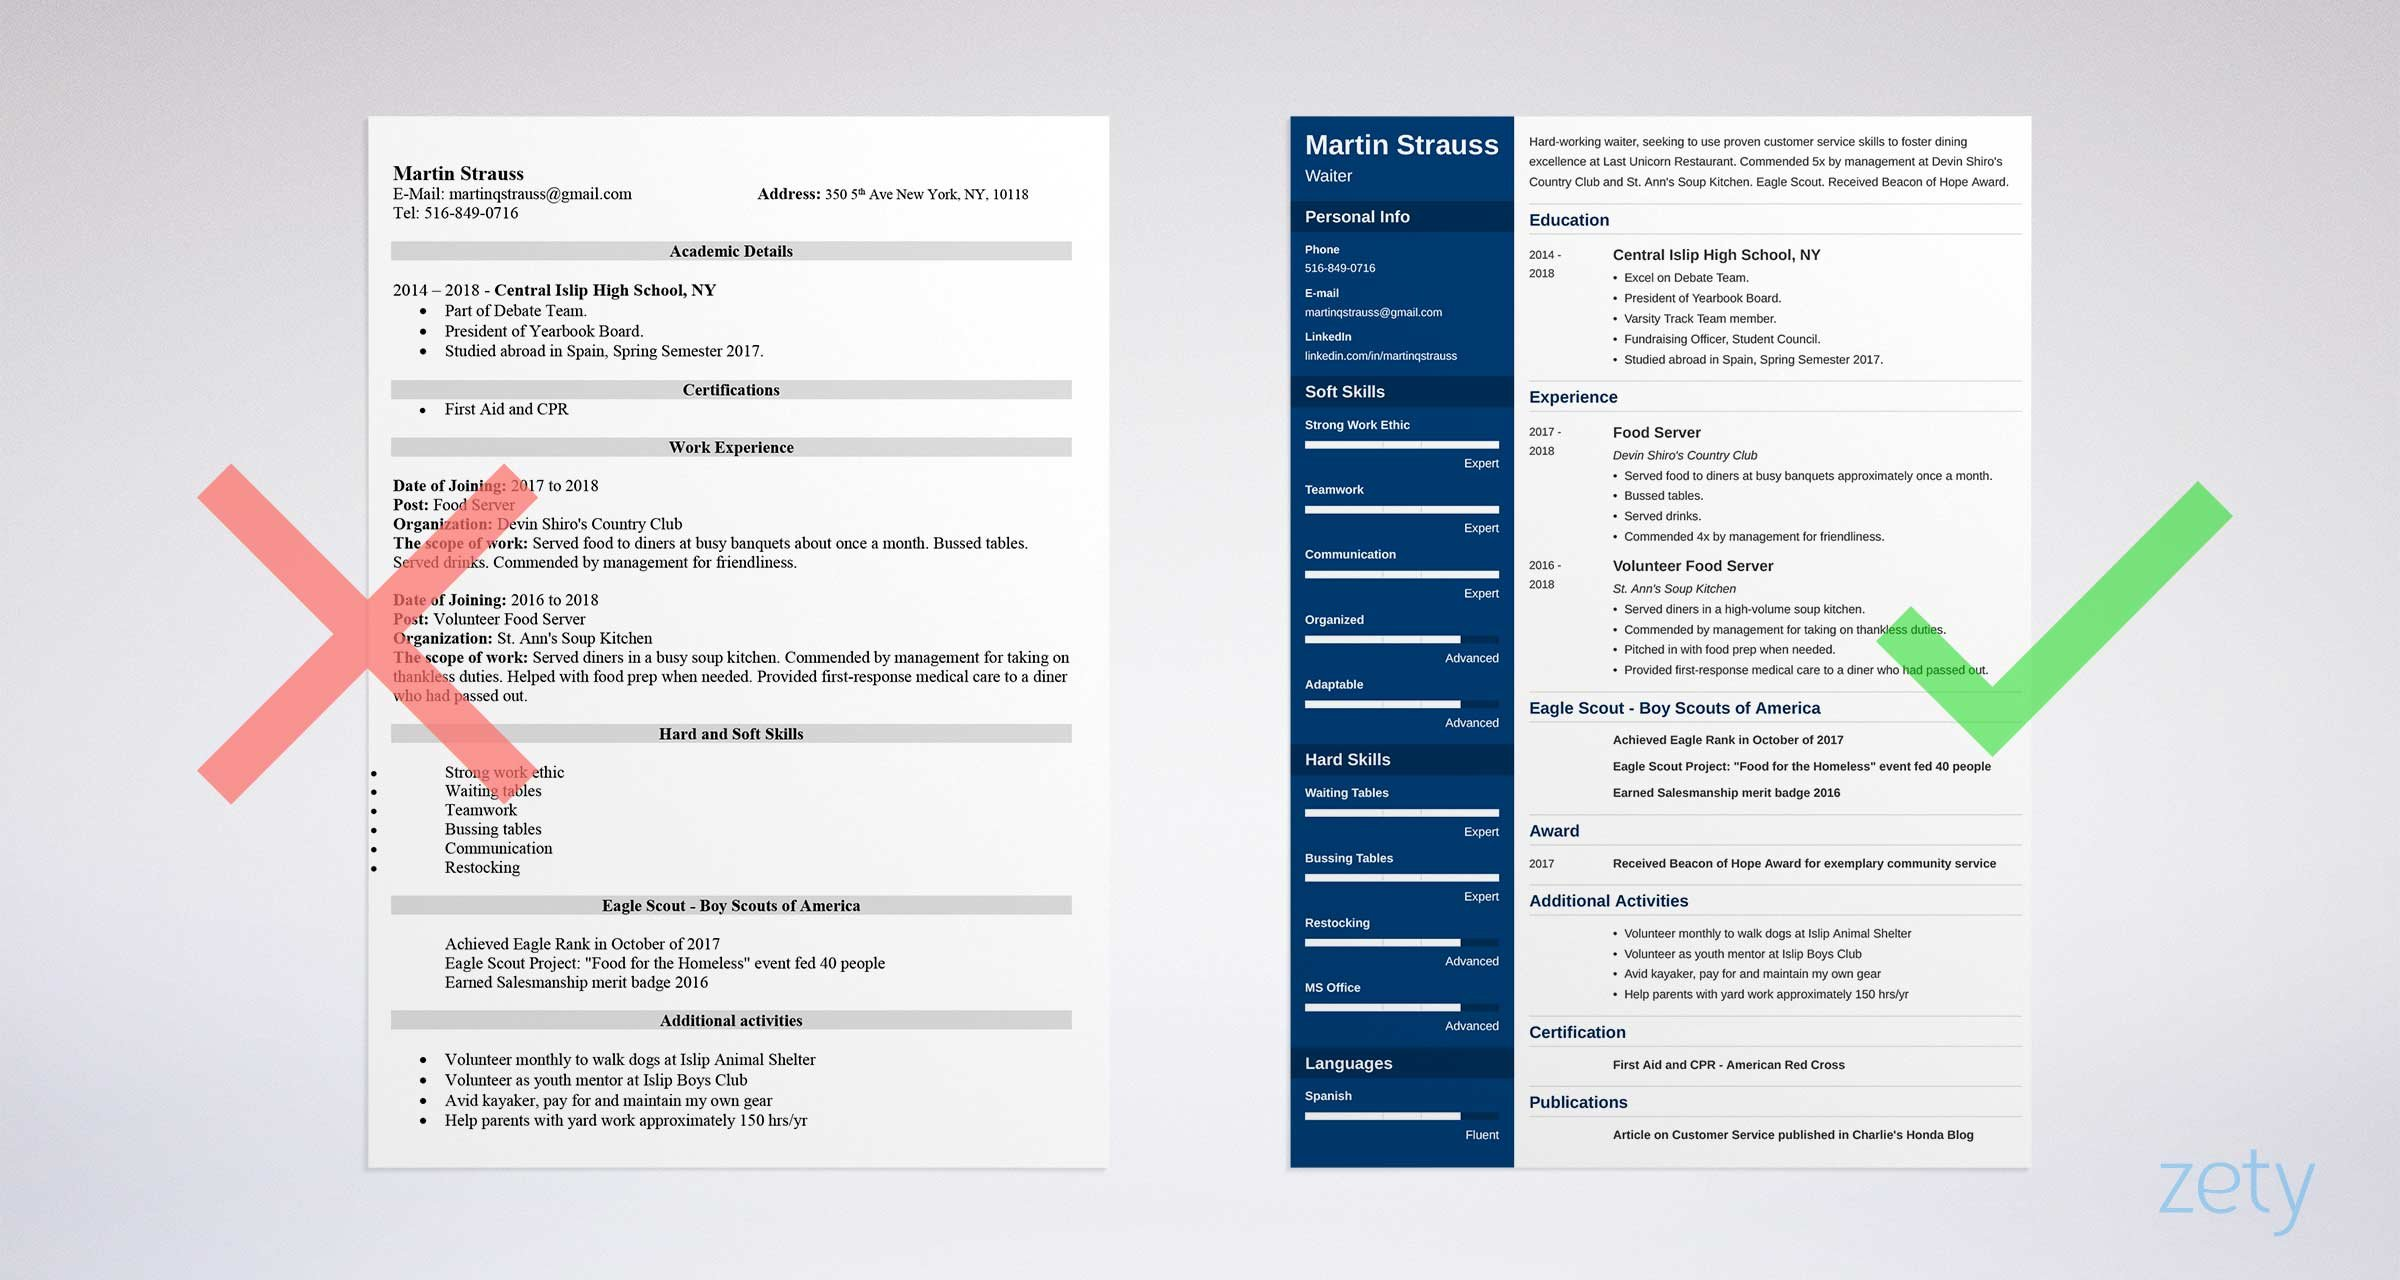 Resume Examples For Teens: Templates, Builder U0026 Writing Guide [+Tips]